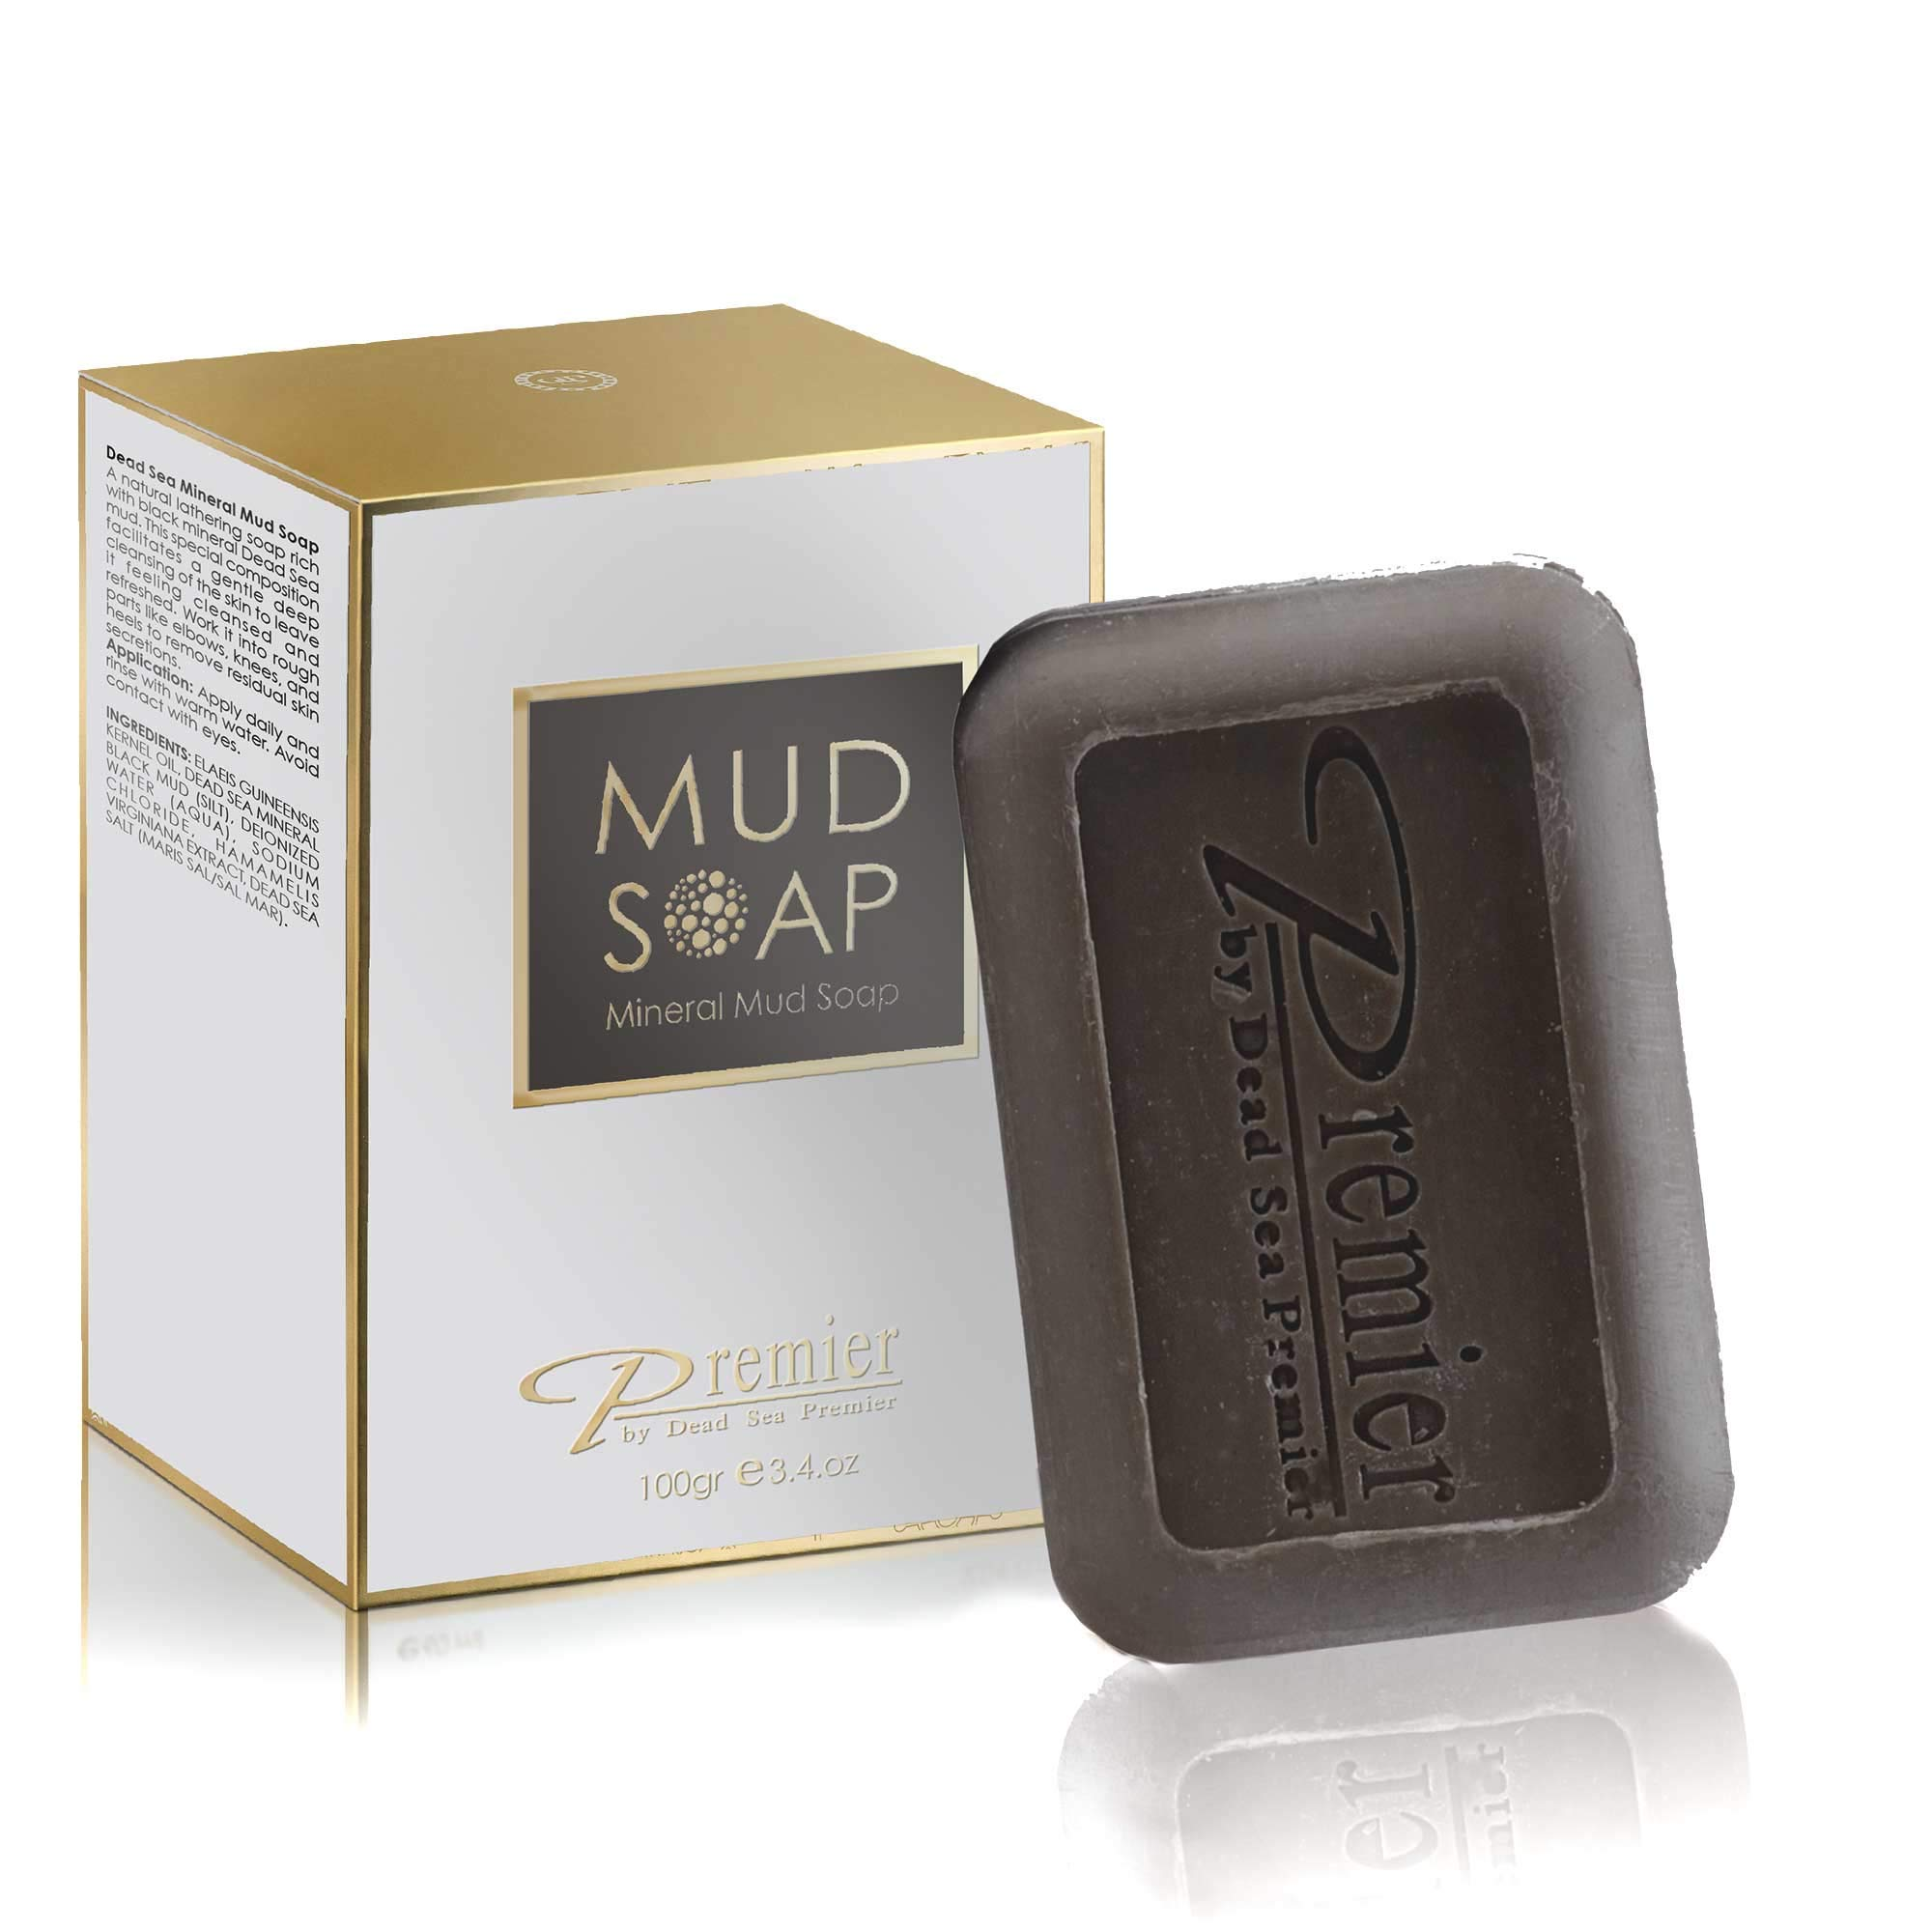 Premier Dead Sea Classic Mineral MUD and salt Soap, for Healthy looking skin. For all Skin Types. Natural, Therapeutic and Antibacterial, Helps with Acne, Eczema and Psorias , 3.4 Fl Oz by Premier by Dead Sea Premier